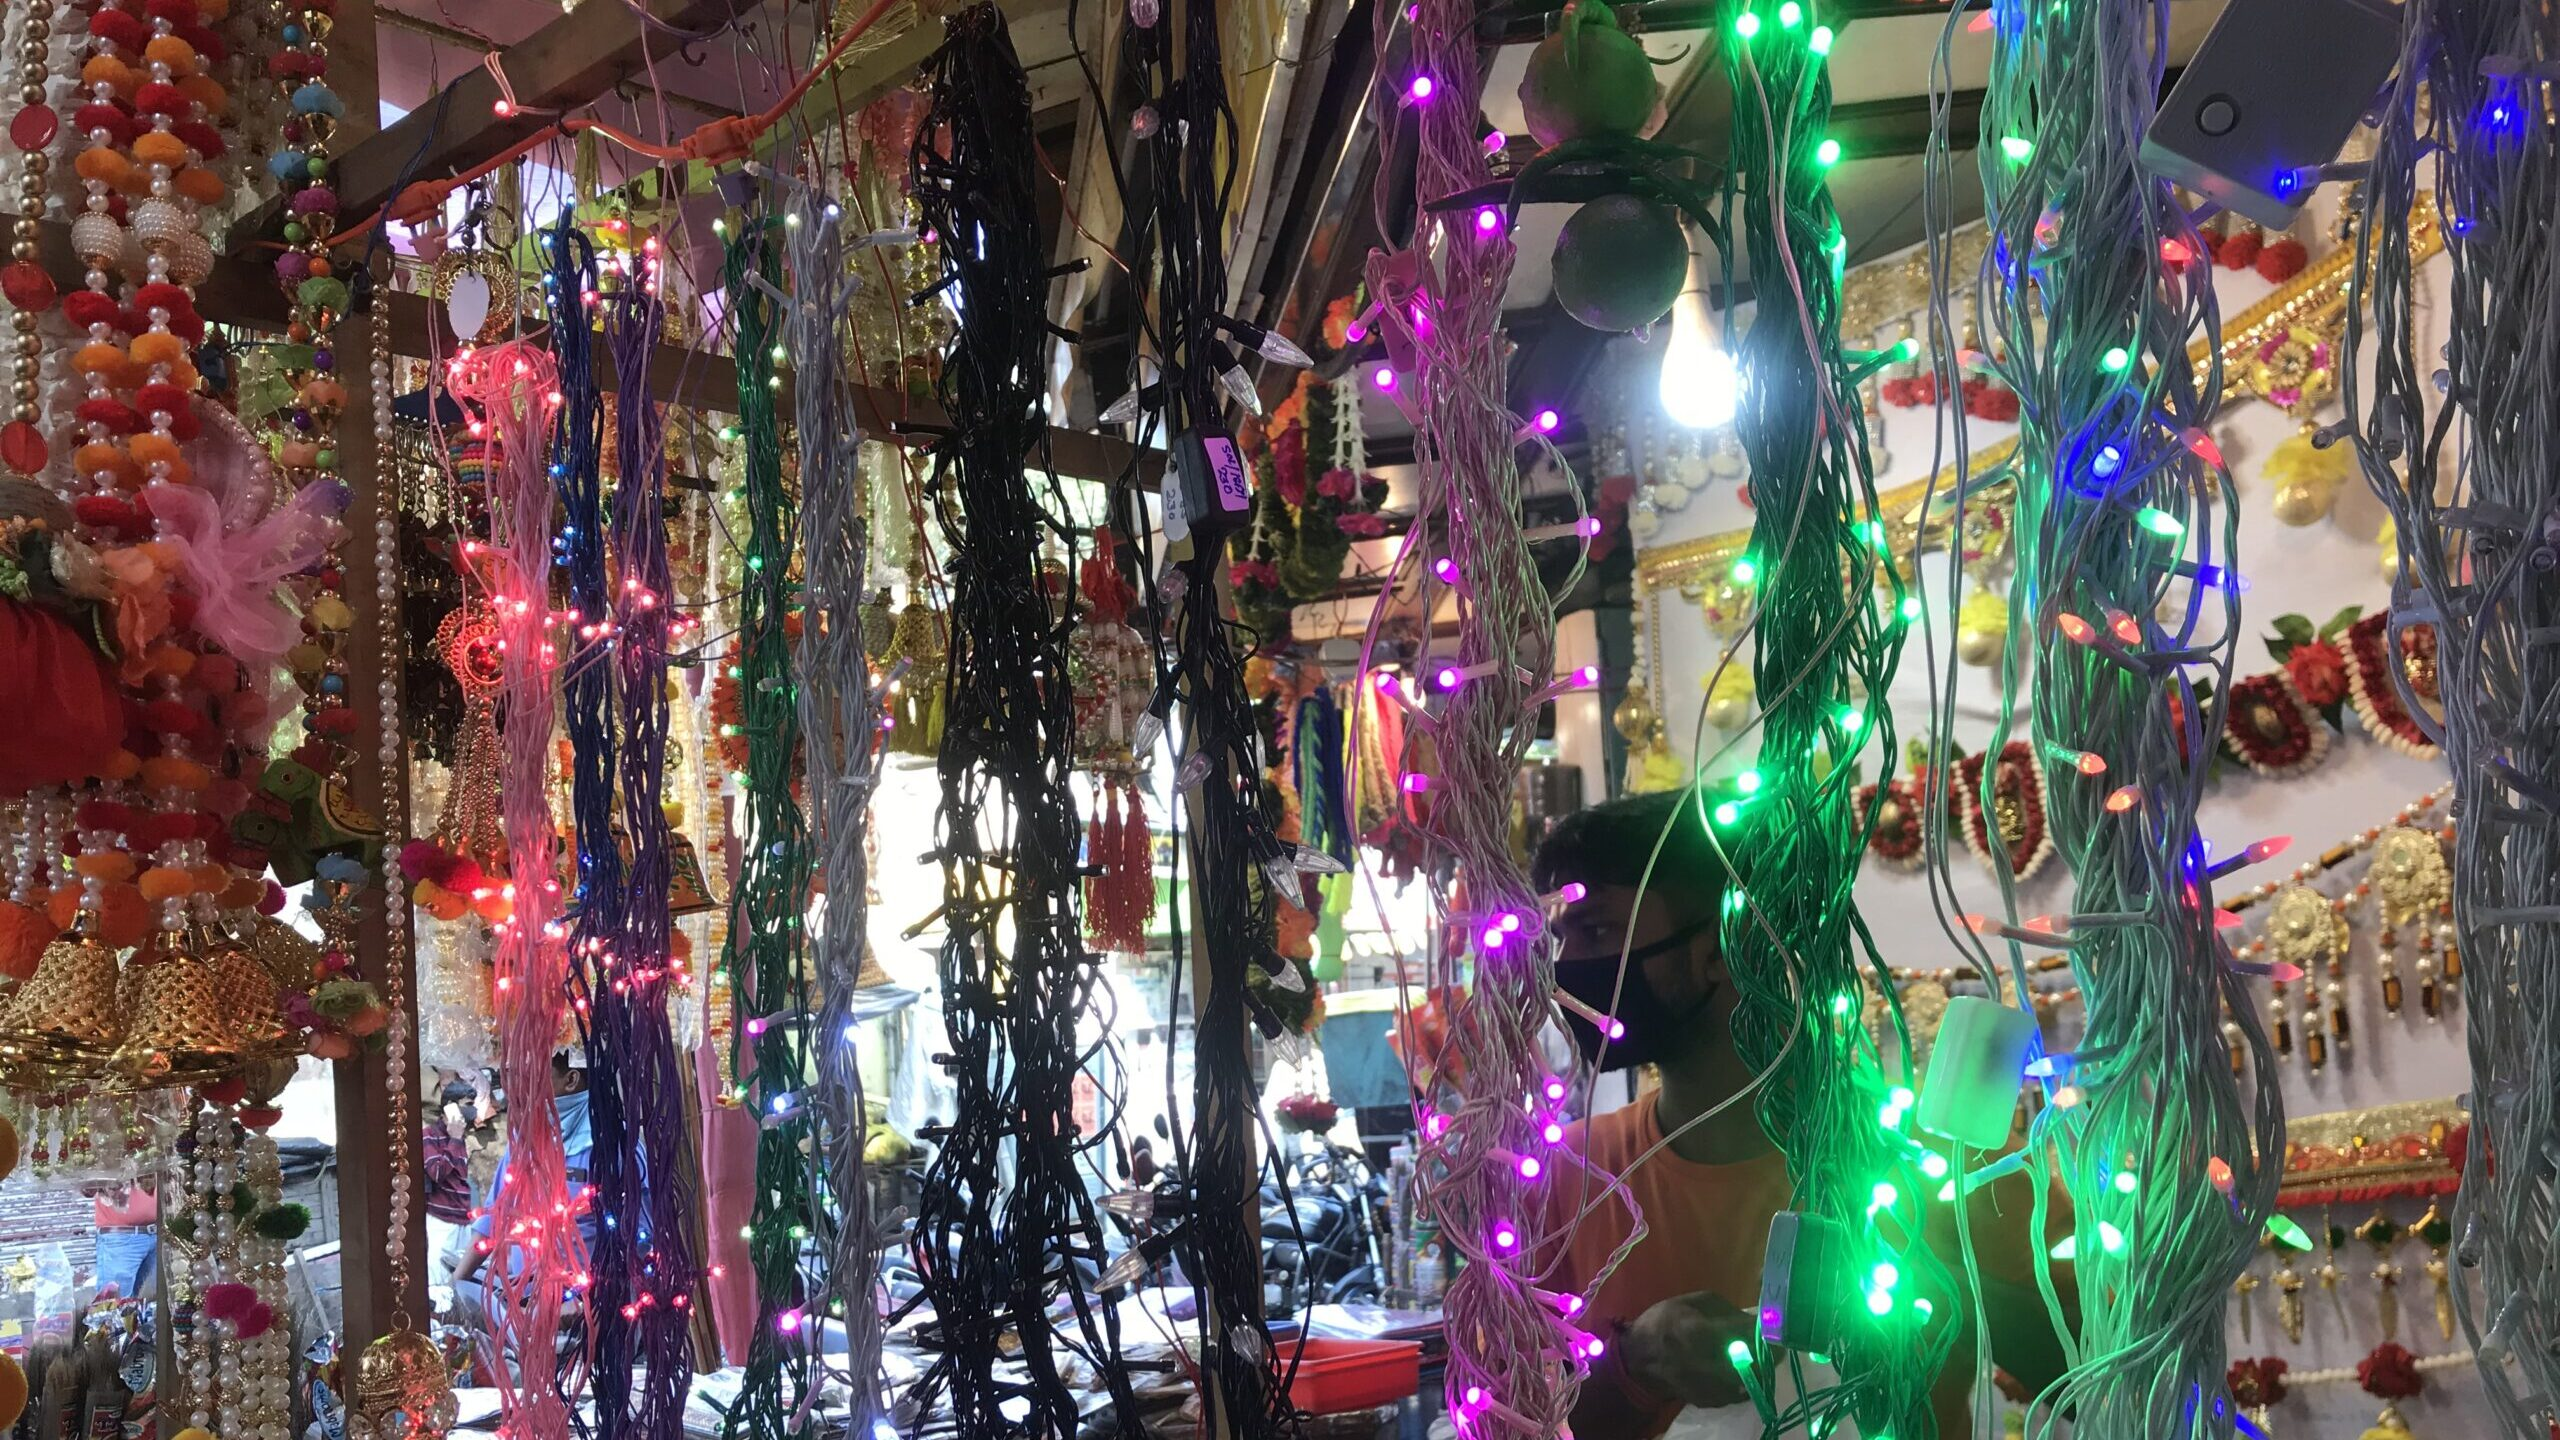 Chinese Lights Brighten Up Diwali—One of India's Biggest Festivals